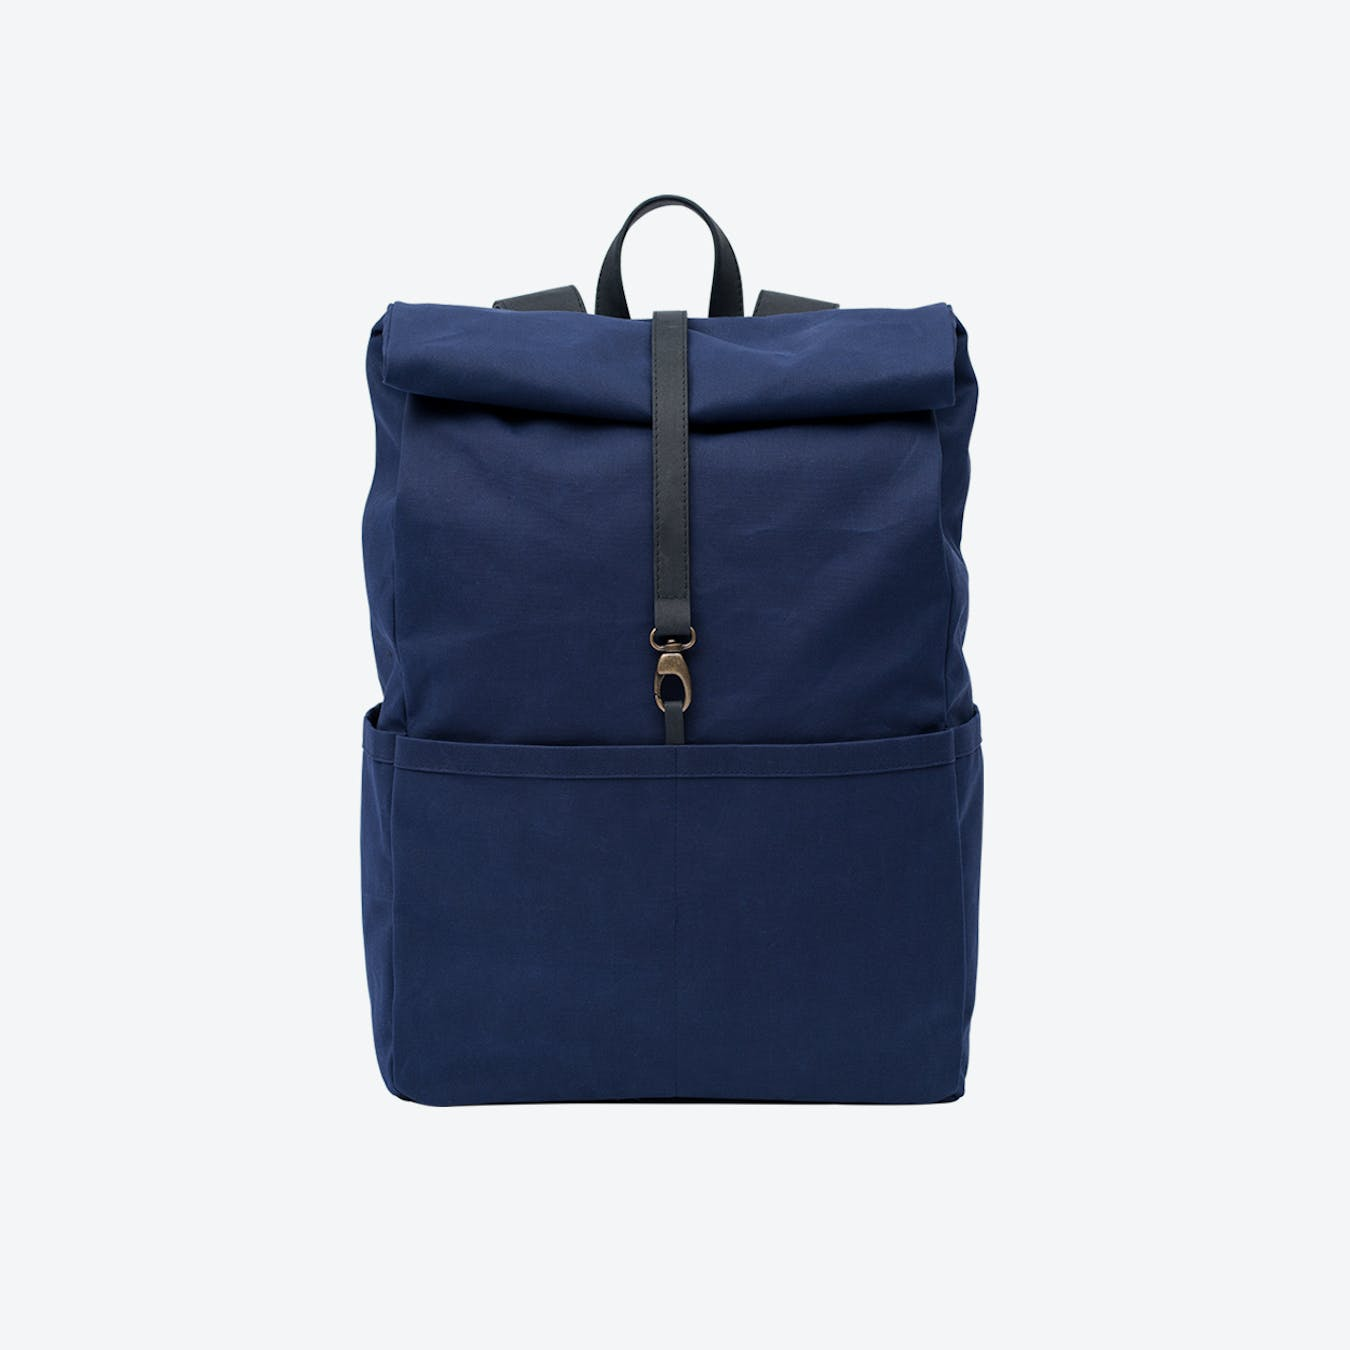 Backpack in Navy and Charcoal